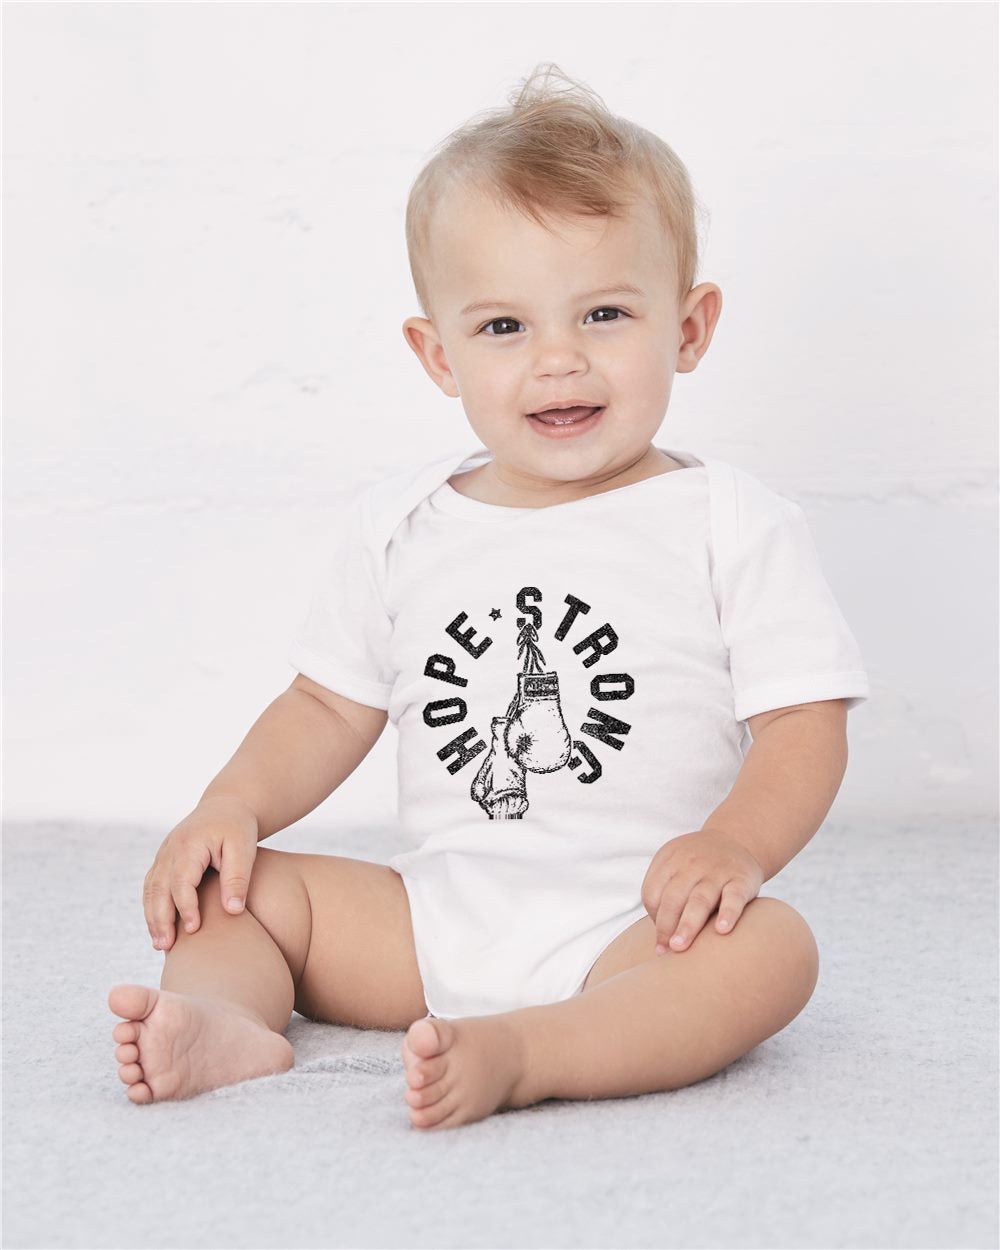 HOPE Strong Boxing Gloves Baby Cozy Graphic Tee Onesie